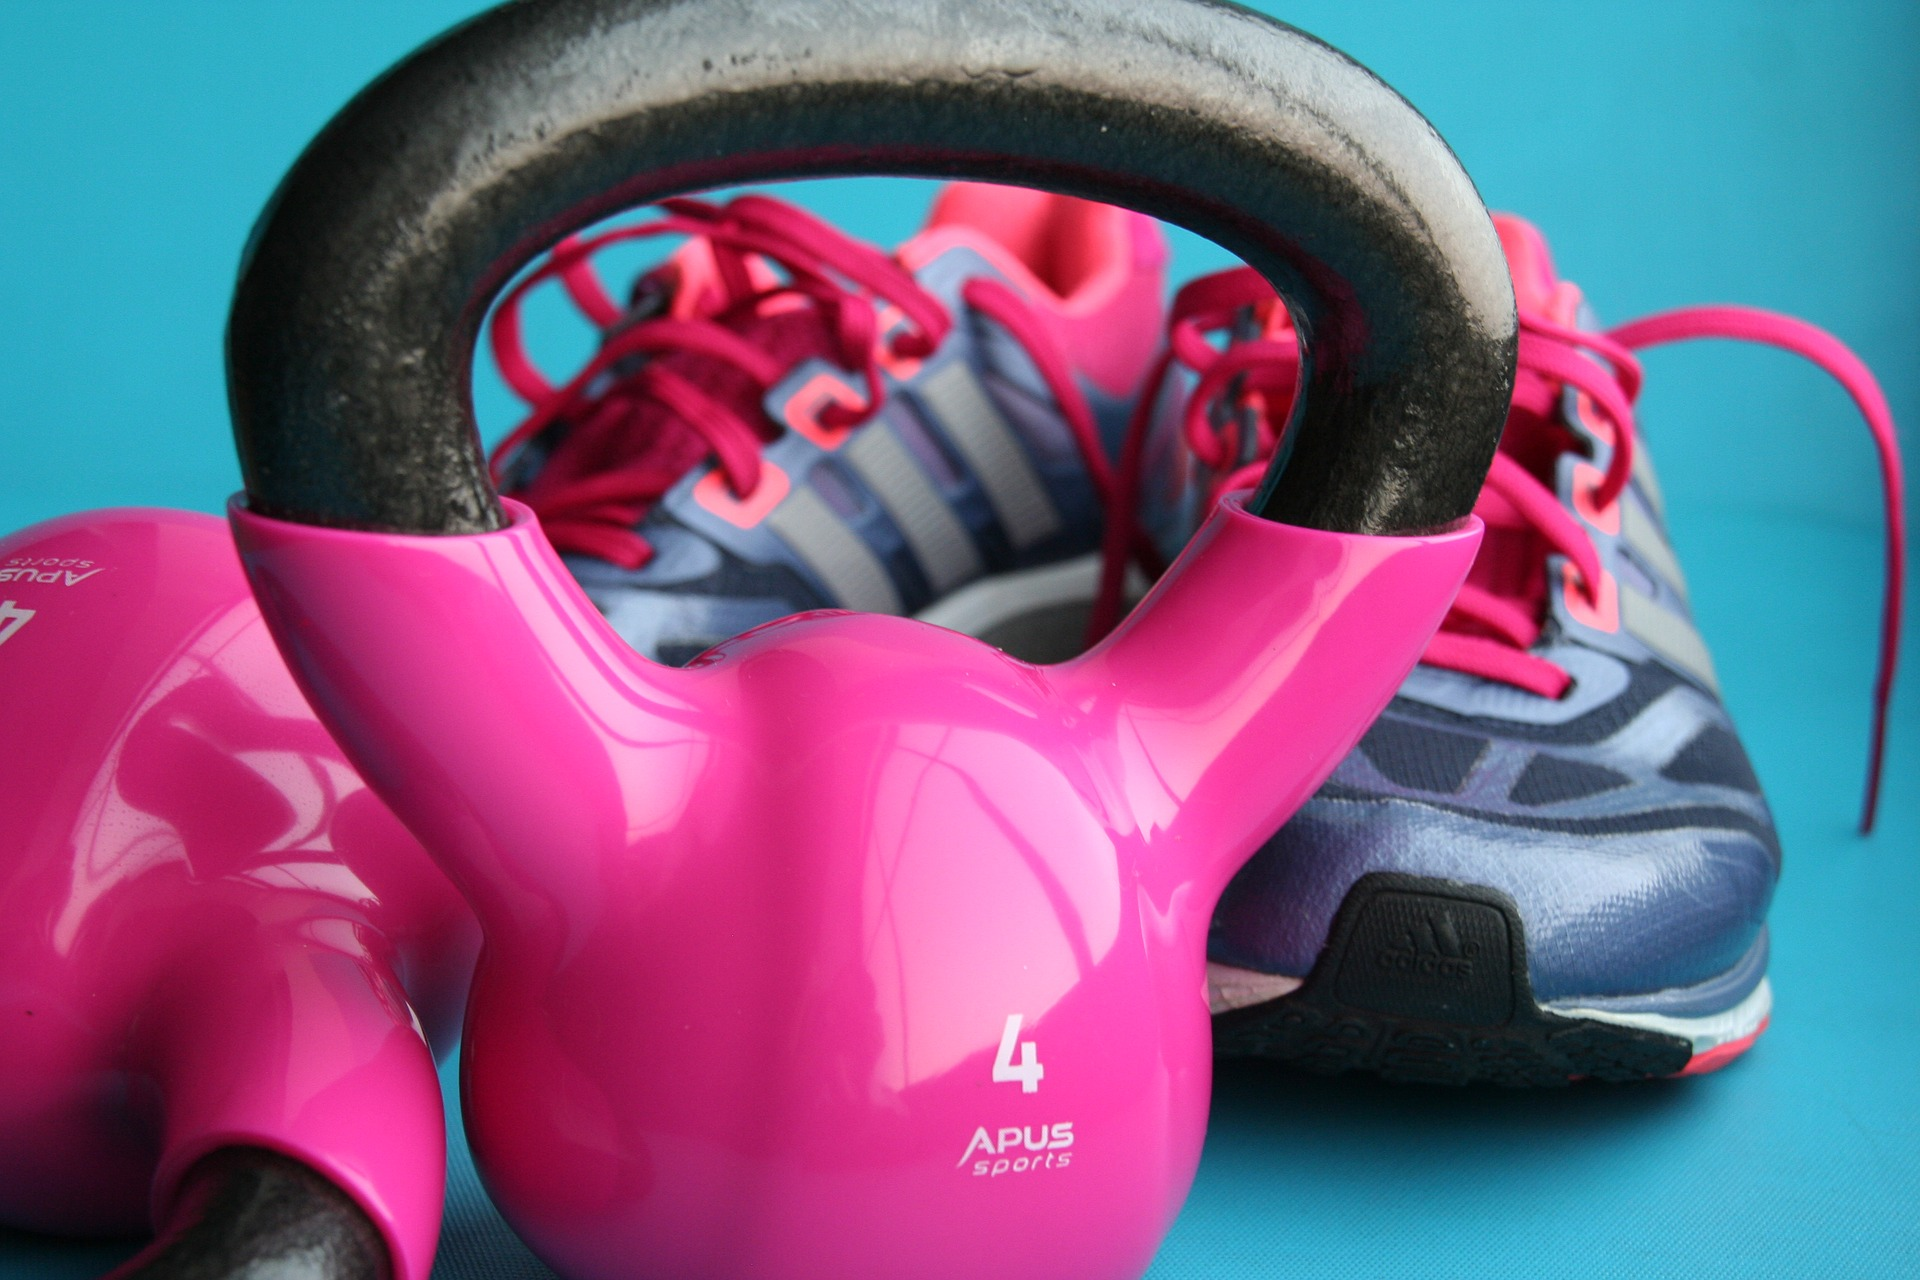 Kettlebell and sneakers